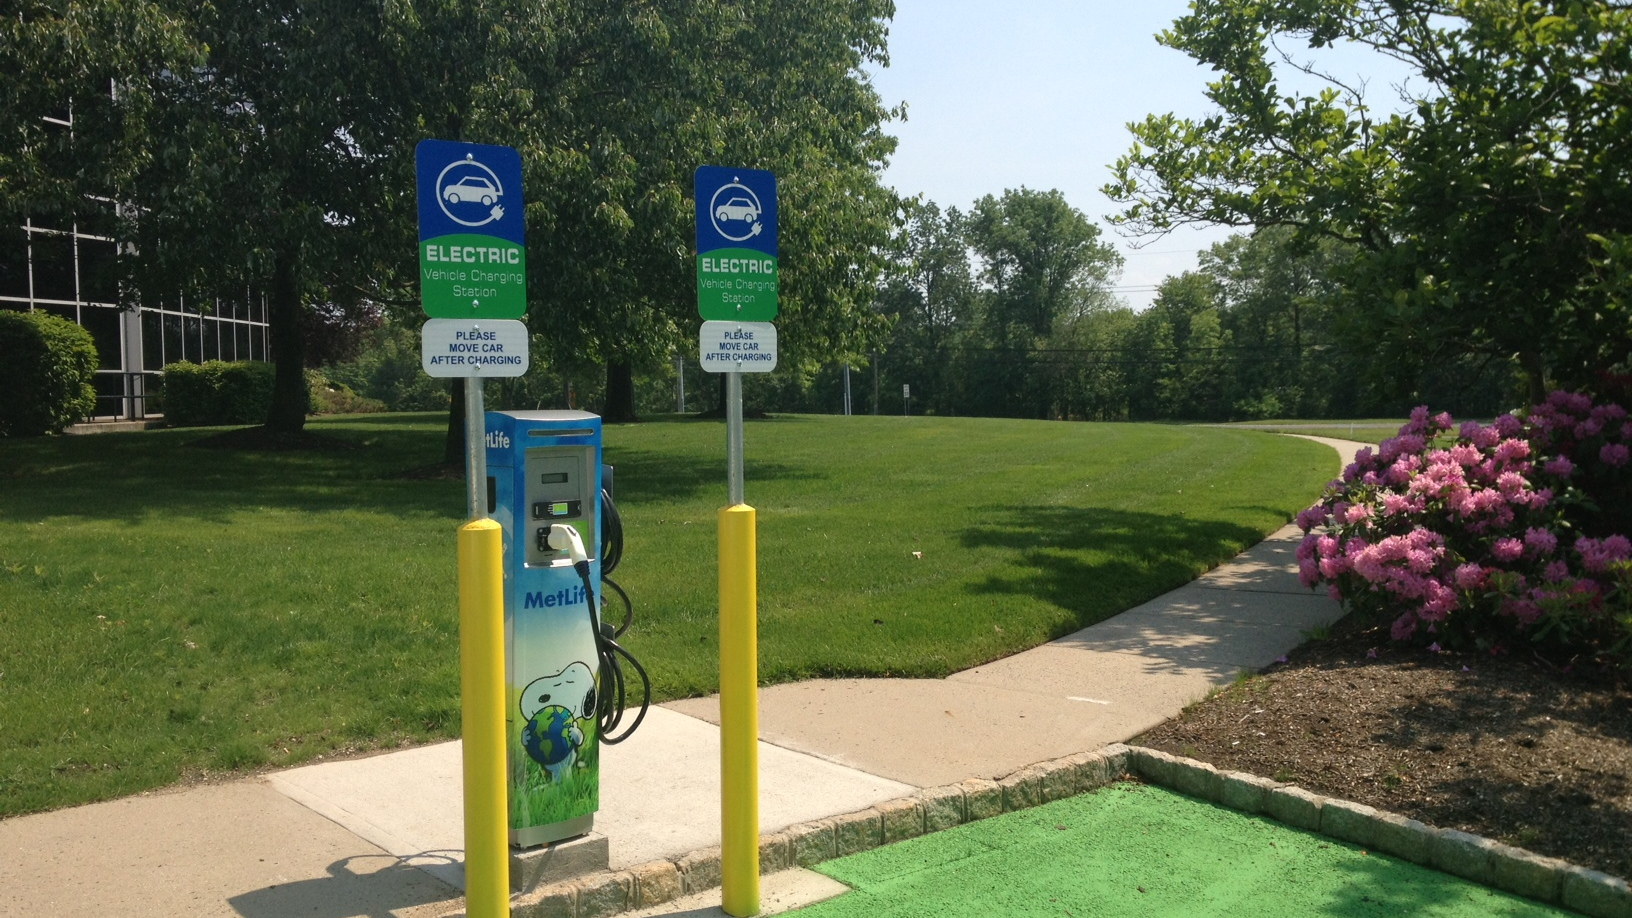 MetLife electric-car charging station for employee use - Bridgewater, New Jersey